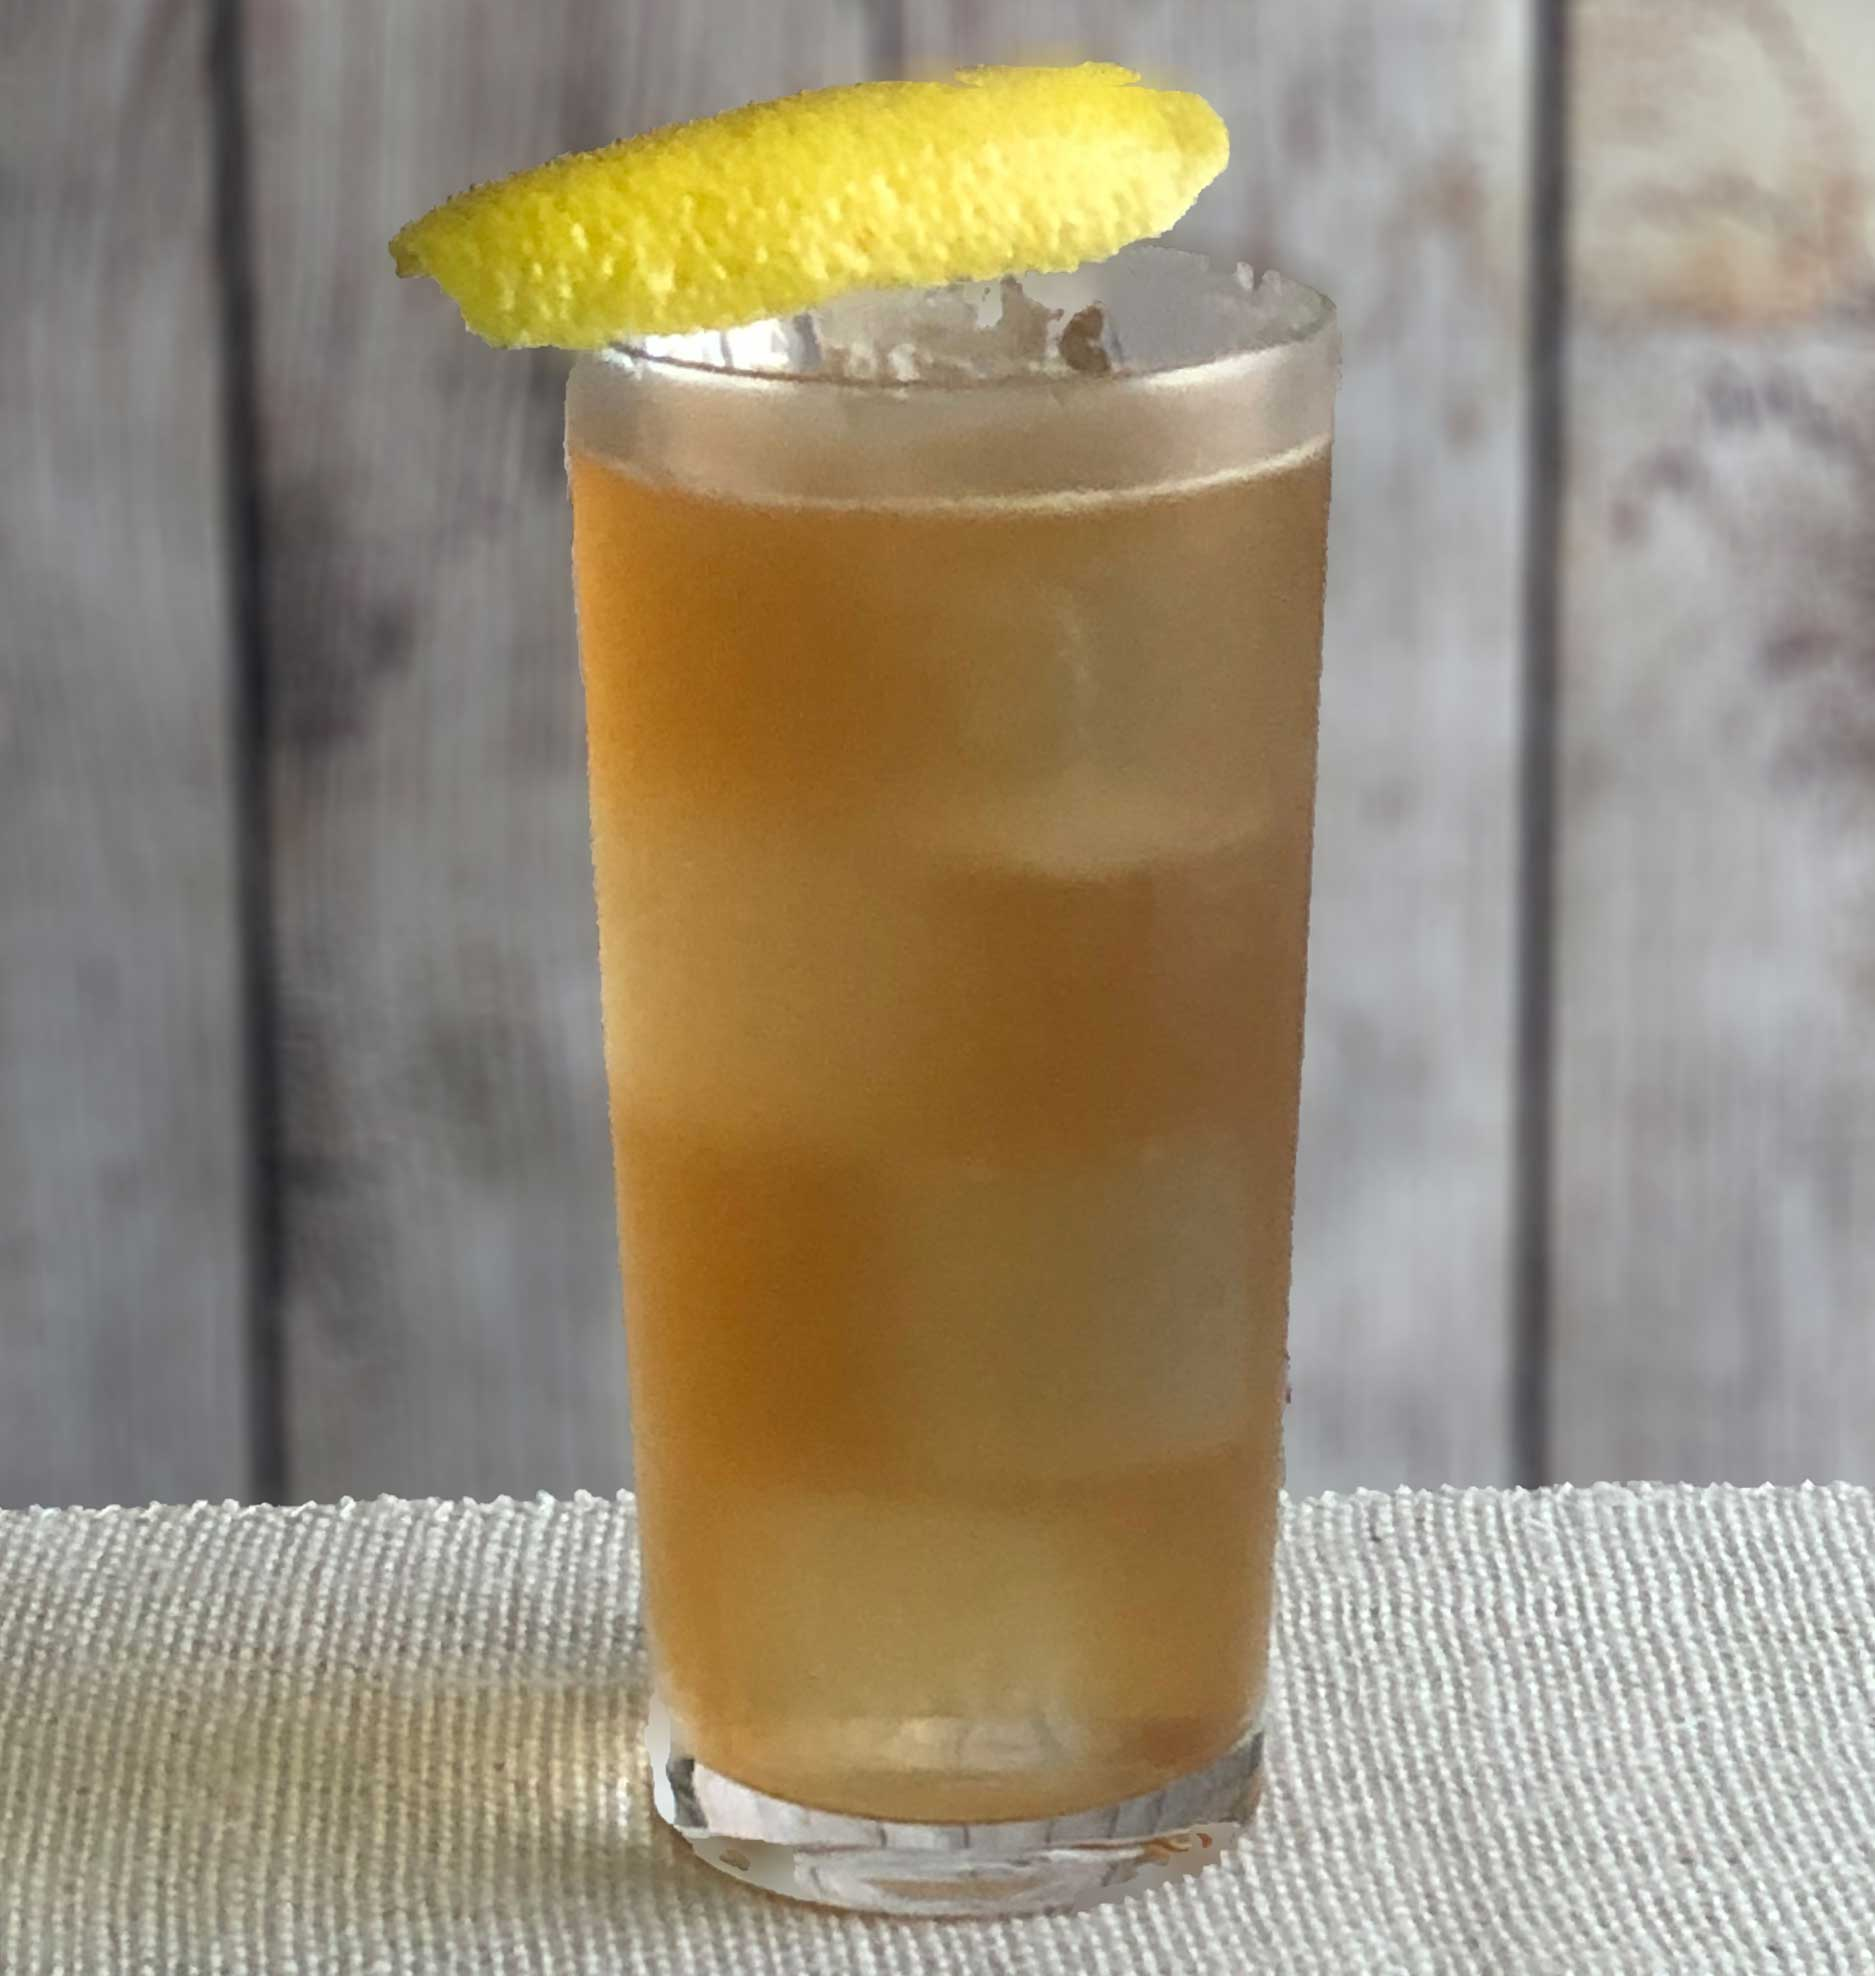 An example of the Service Station Sling, the mixed drink (sling) featuring soda water, blended scotch whisky, Mattei Cap Corse Rouge Quinquina, simple syrup, and lemon juice; photo by Lee Edwards